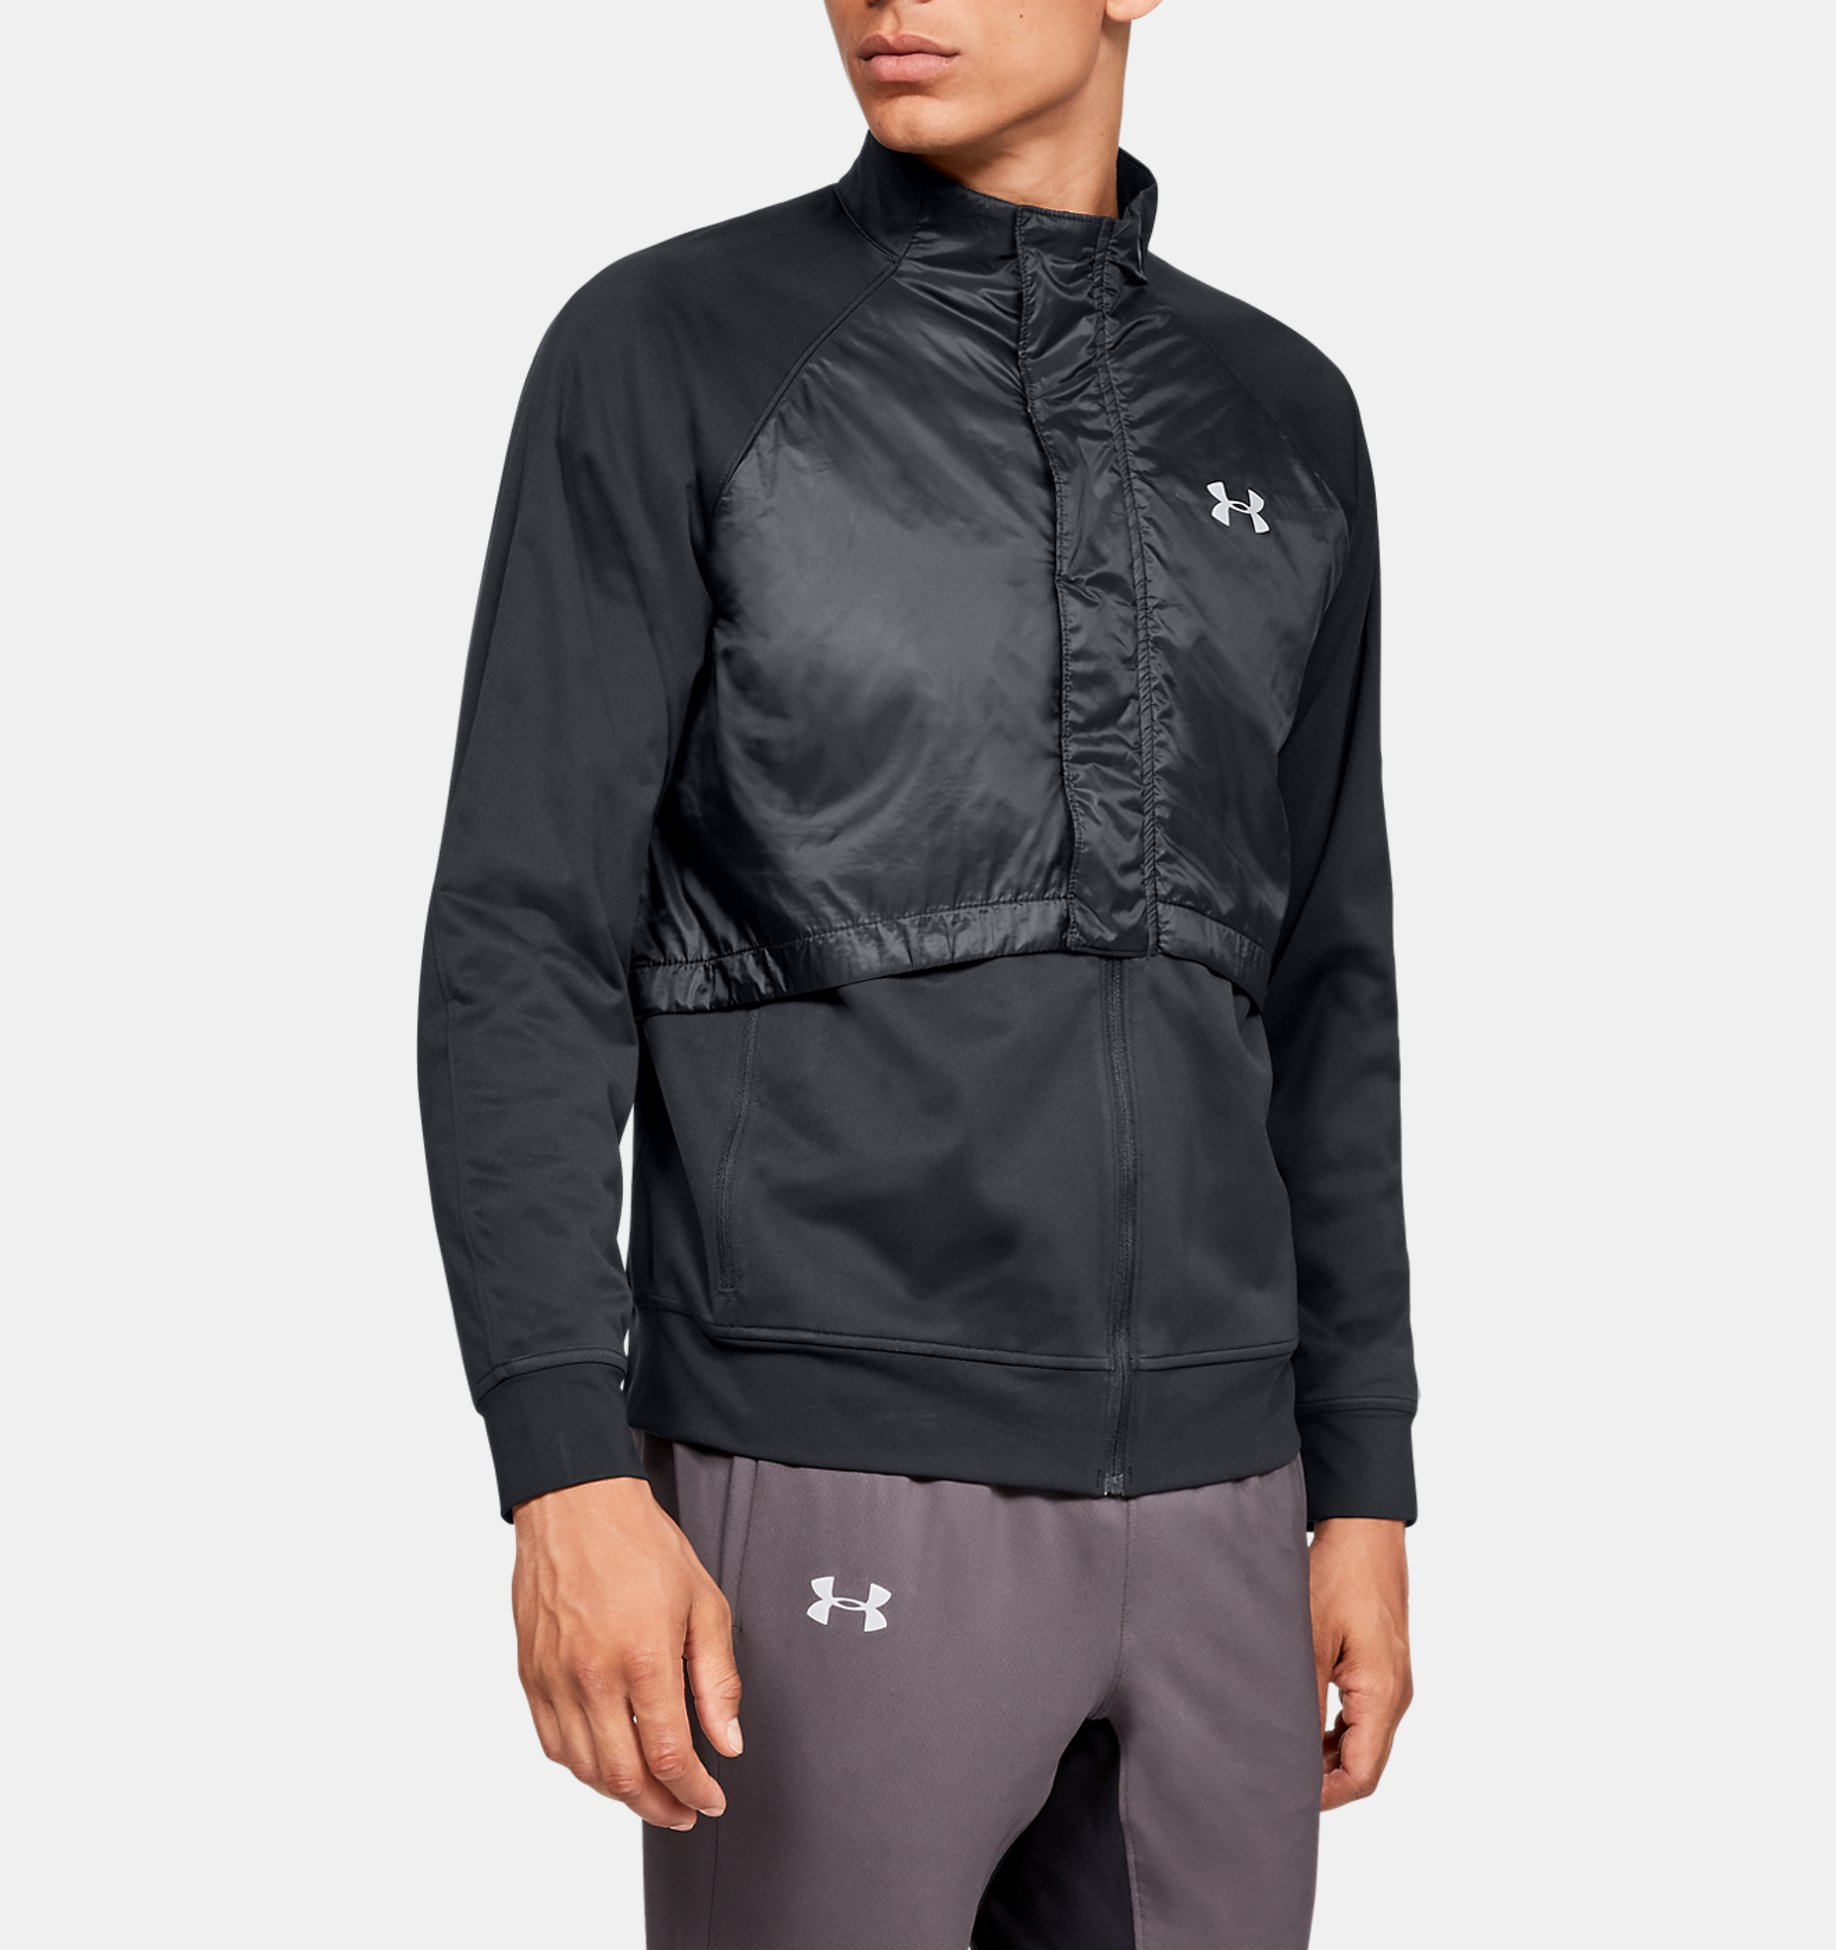 Underarmour Mens UA Pick Up The Pace Jacket